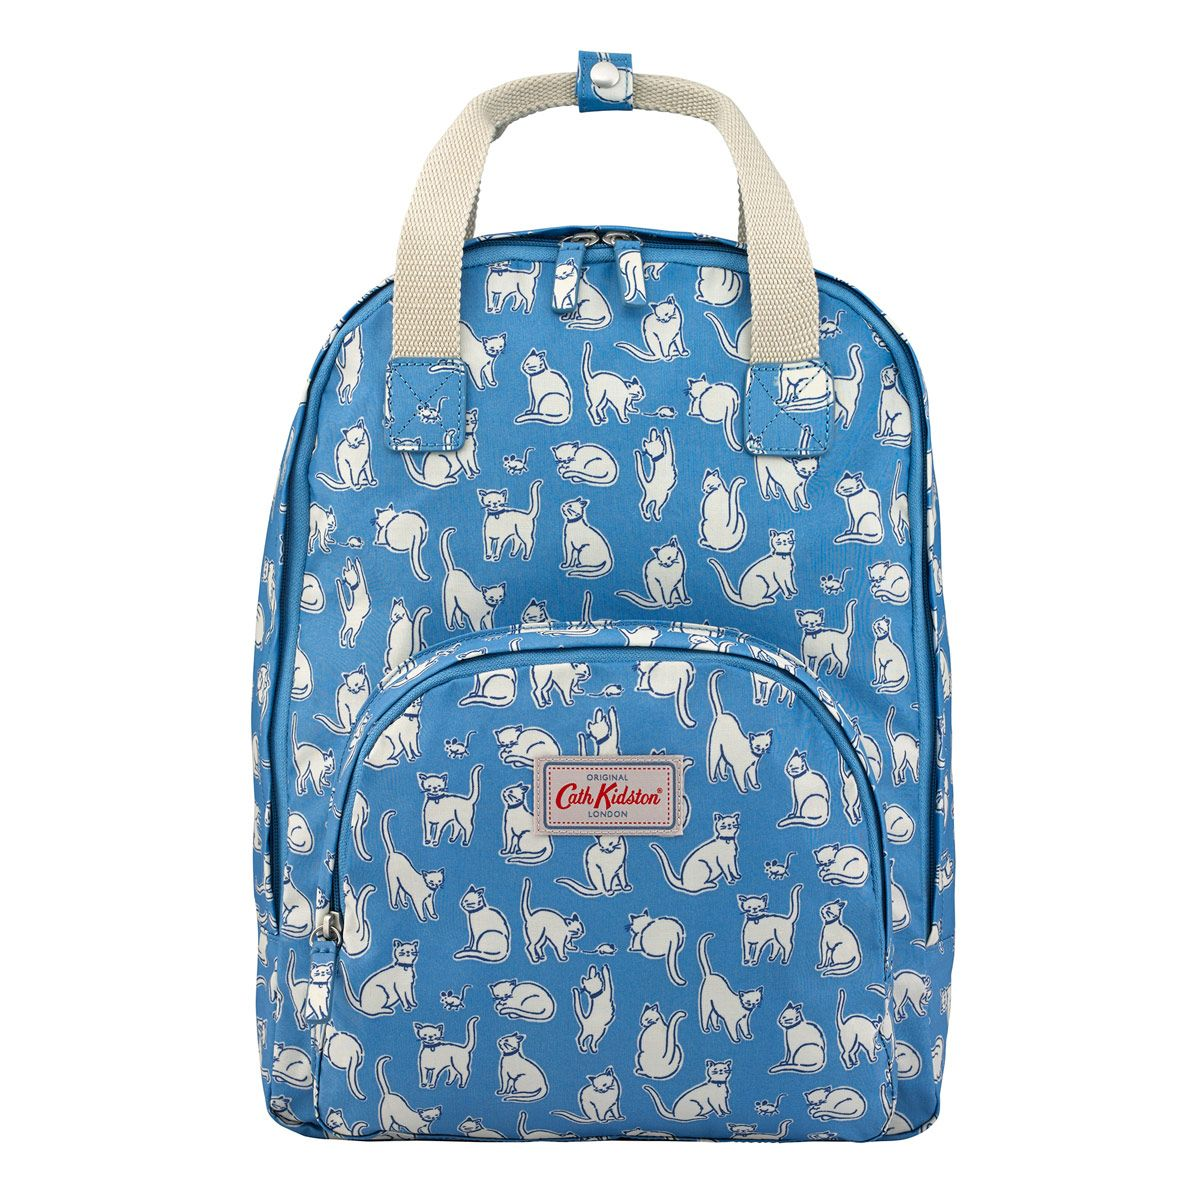 88eecd7c5c8 Mono Cats Multi Pocket Backpack   View All   CathKidston   Present ...